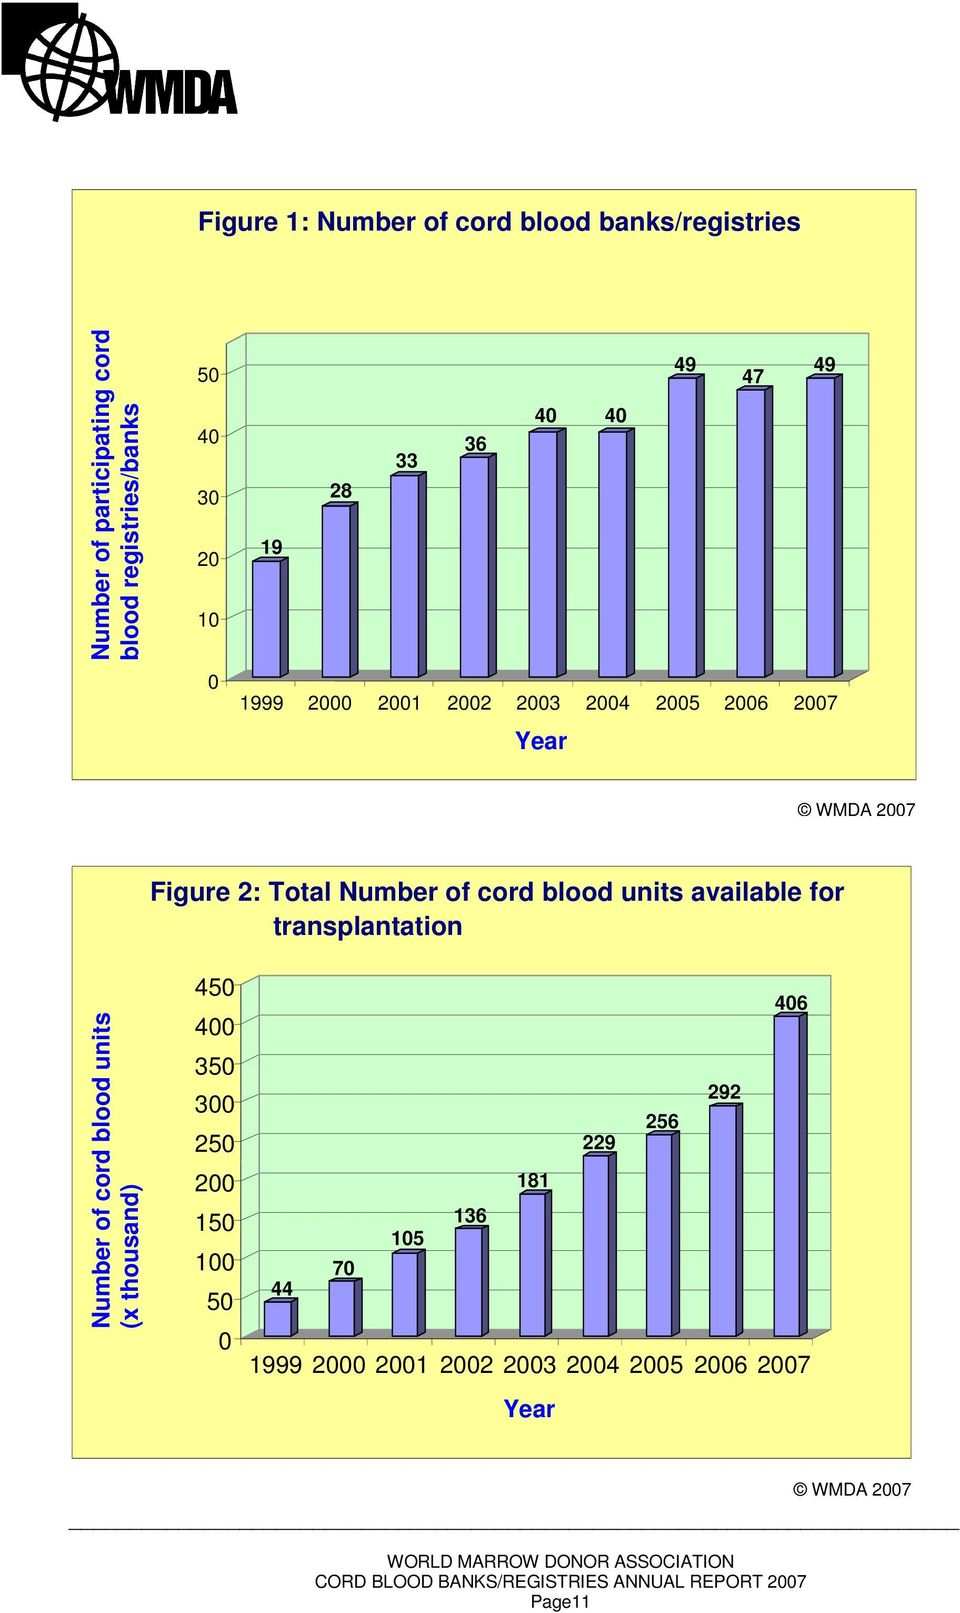 of cord blood units available for transplantation Number of cord blood units (x thousand) 450 400 350 300